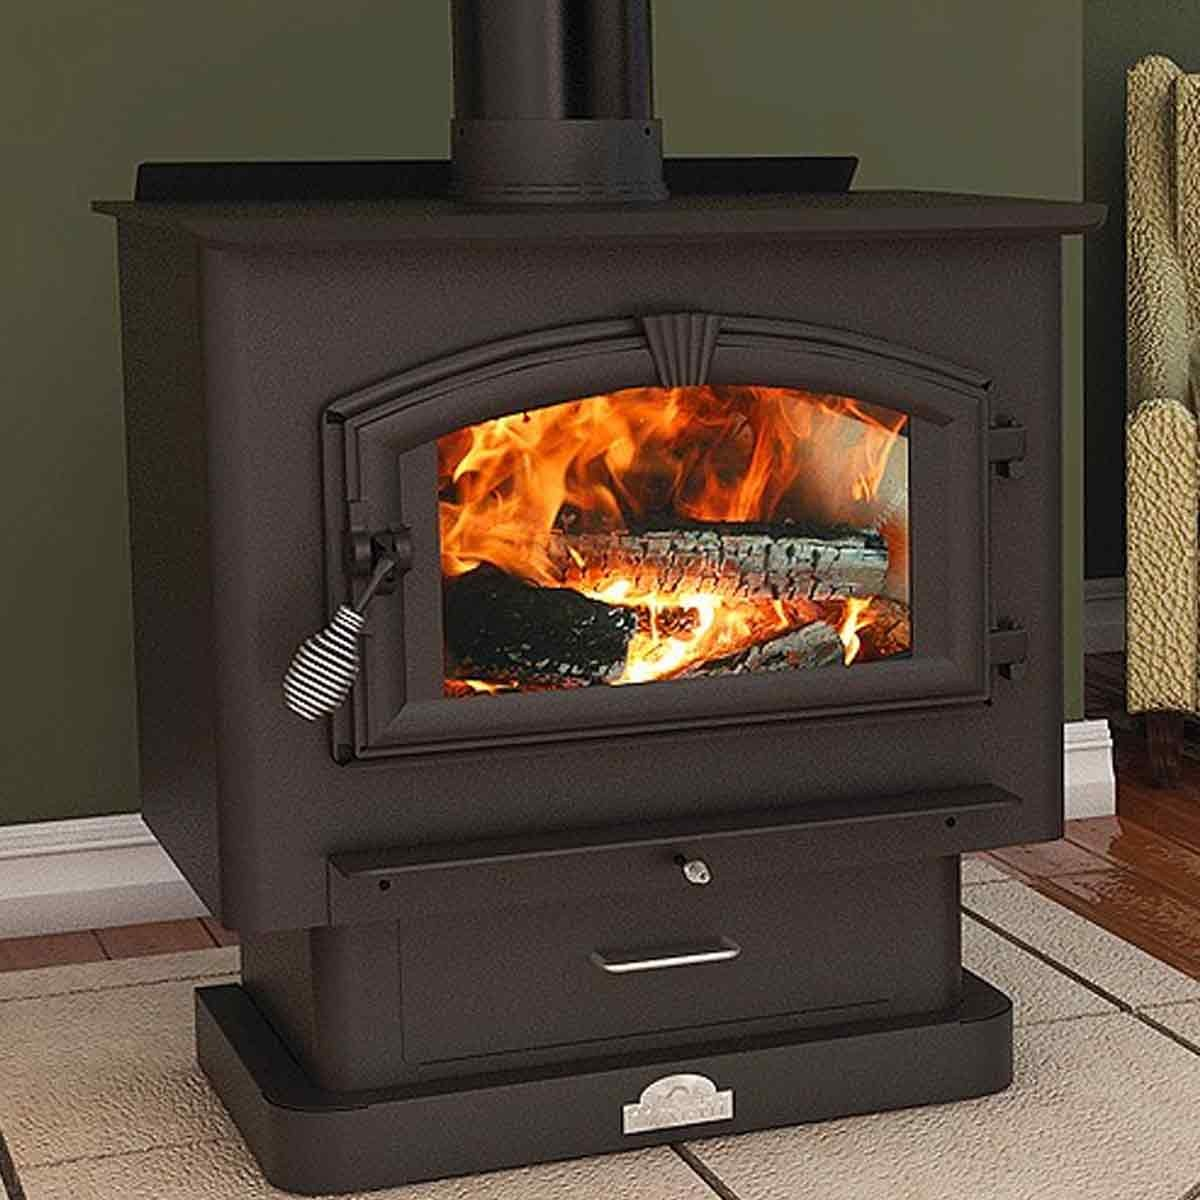 nle5sv 2000 07 u s stove medium epa certified woodburning stove with blower 2000